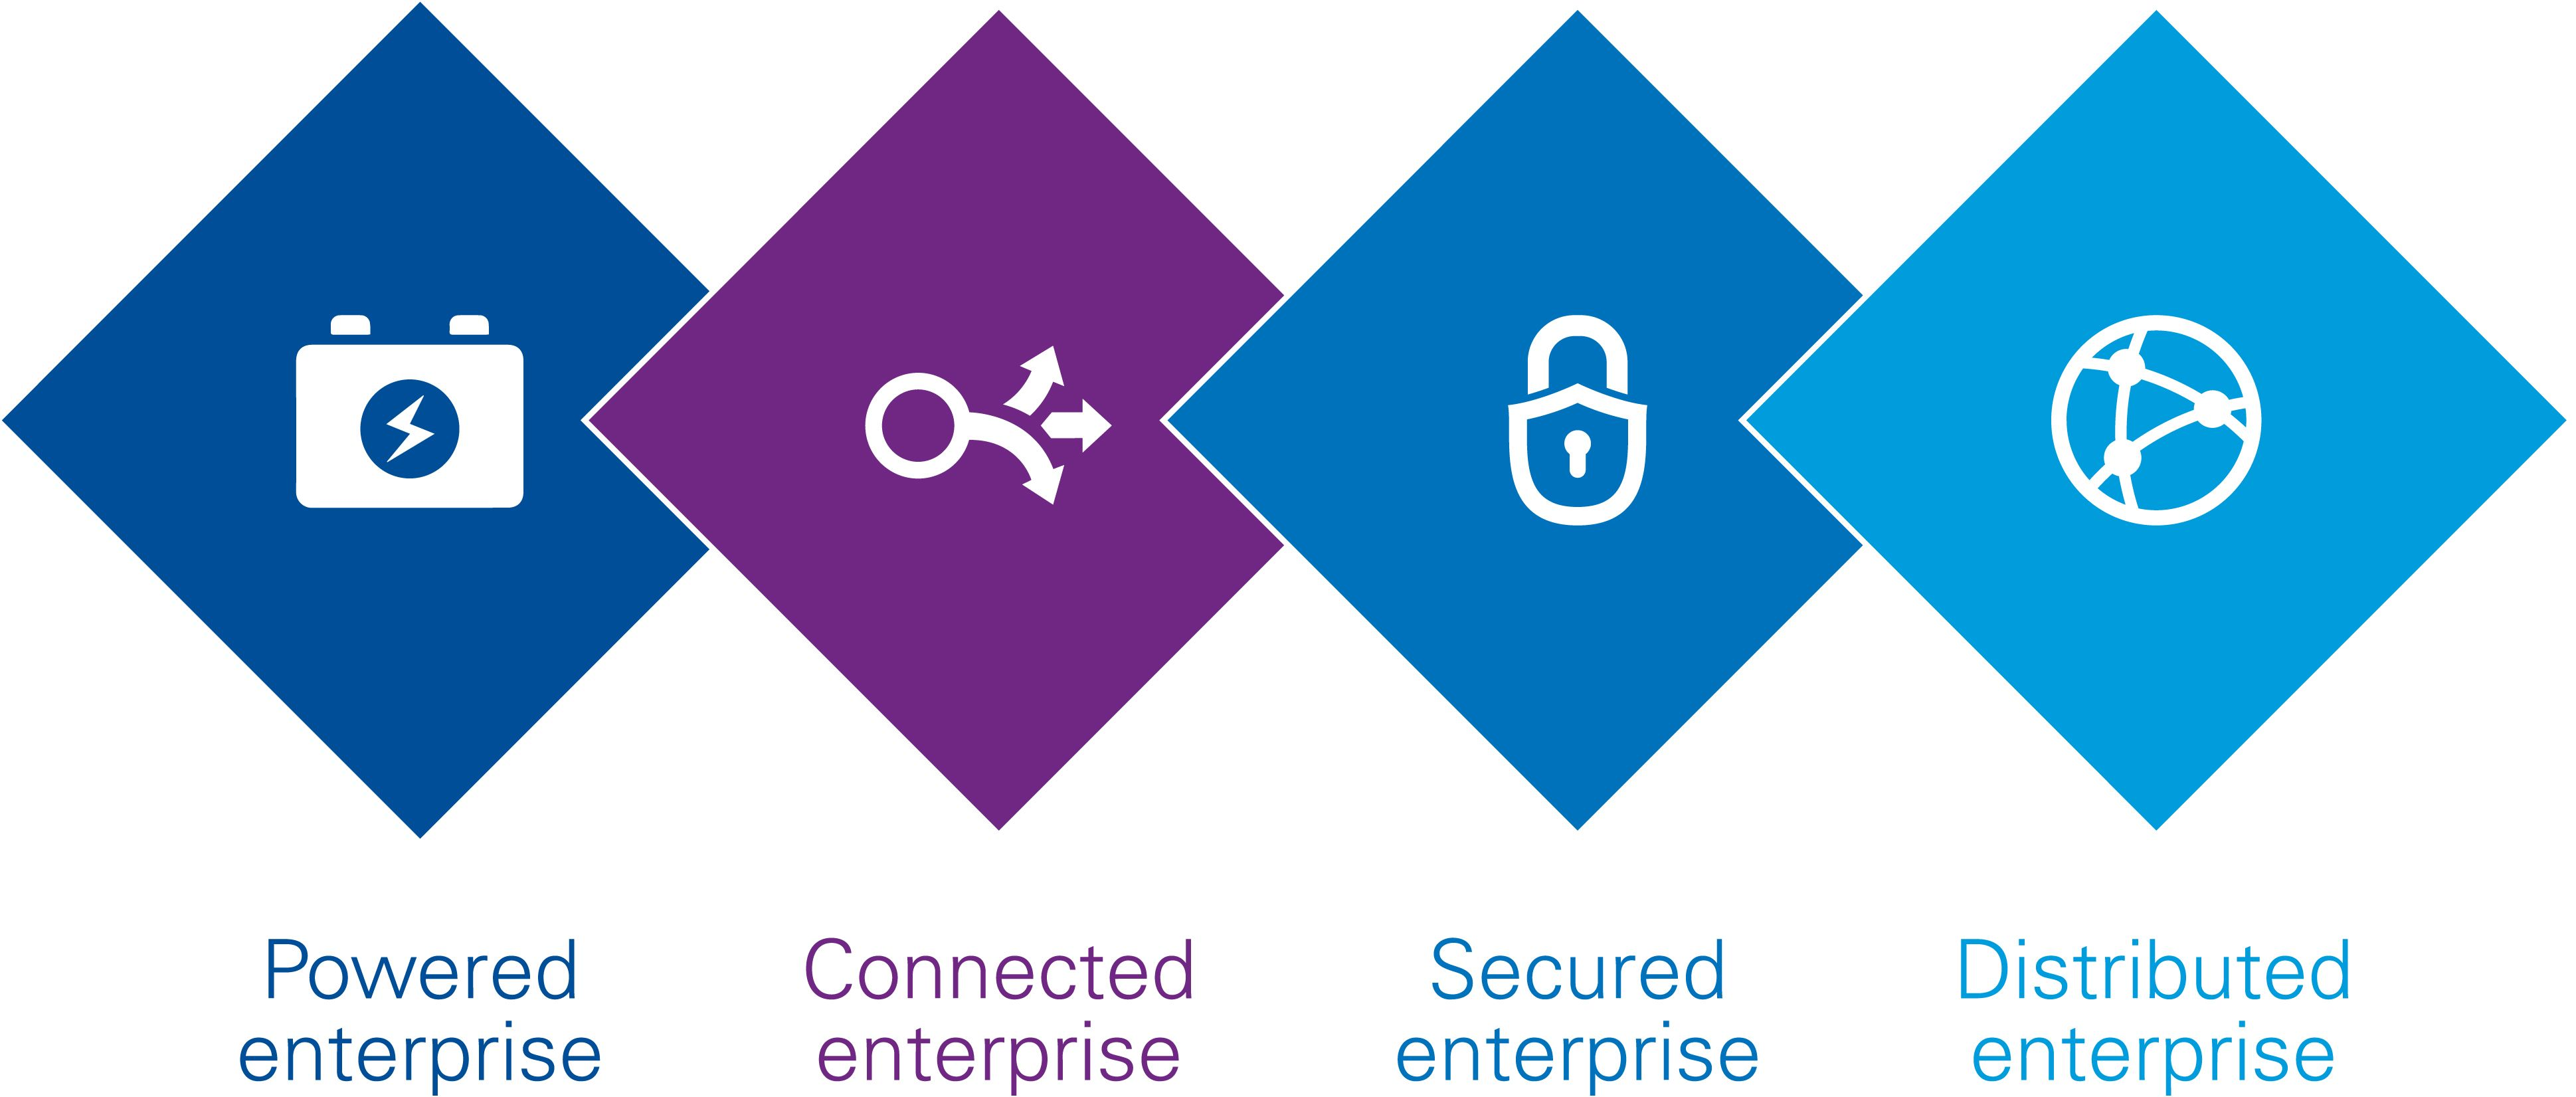 Powered, connected, secured and distributed enterprise infographic